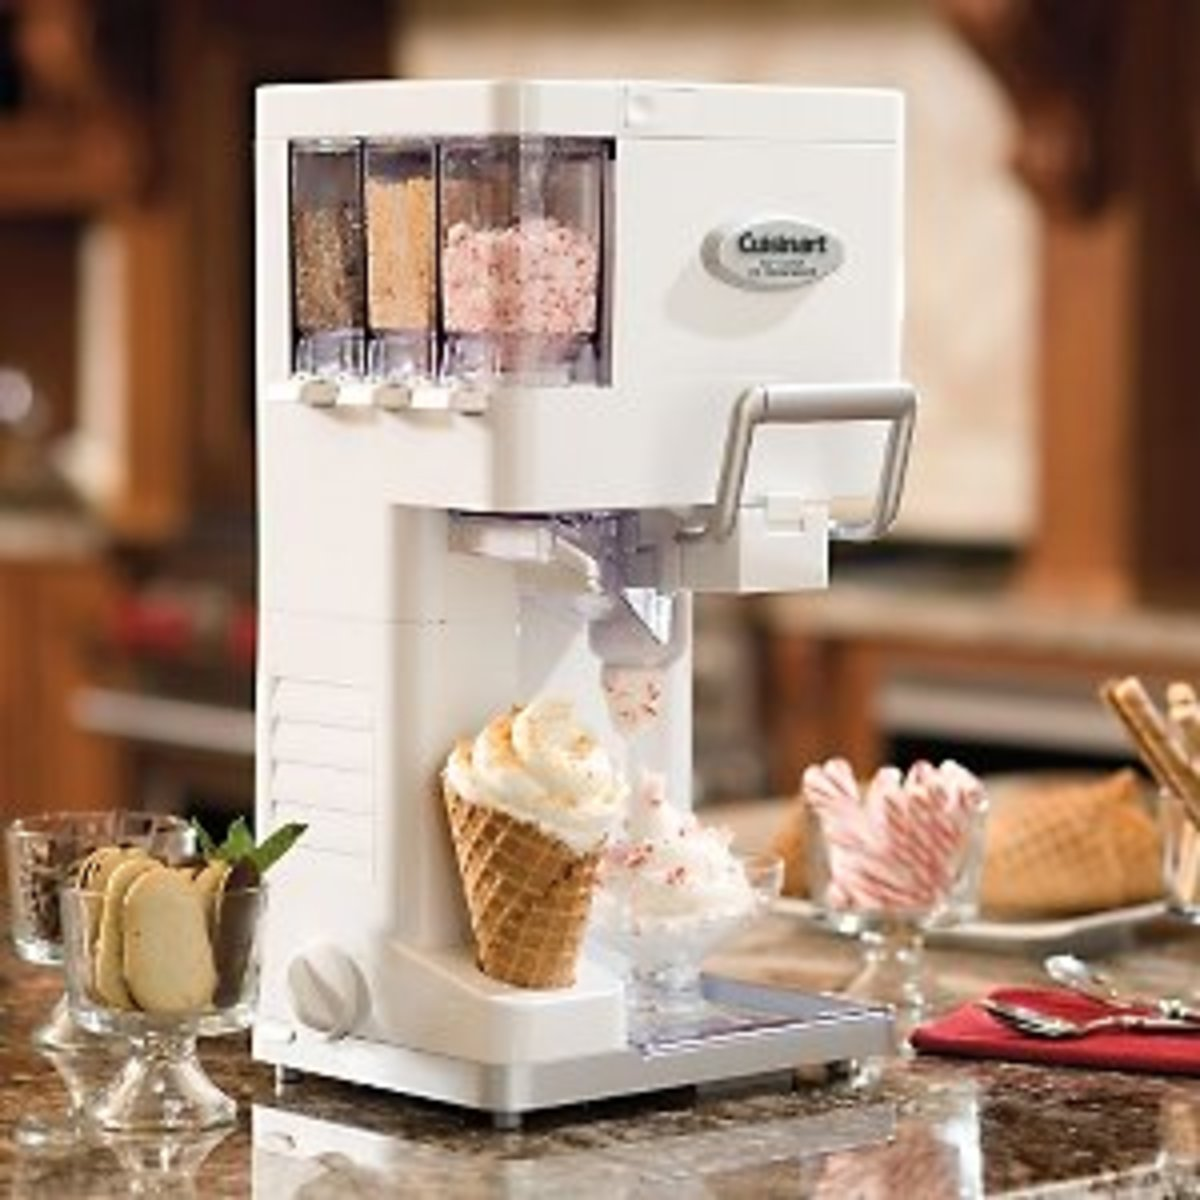 This is the model I personally own.  It's a Cuisinart Front Gate model.  Works great!